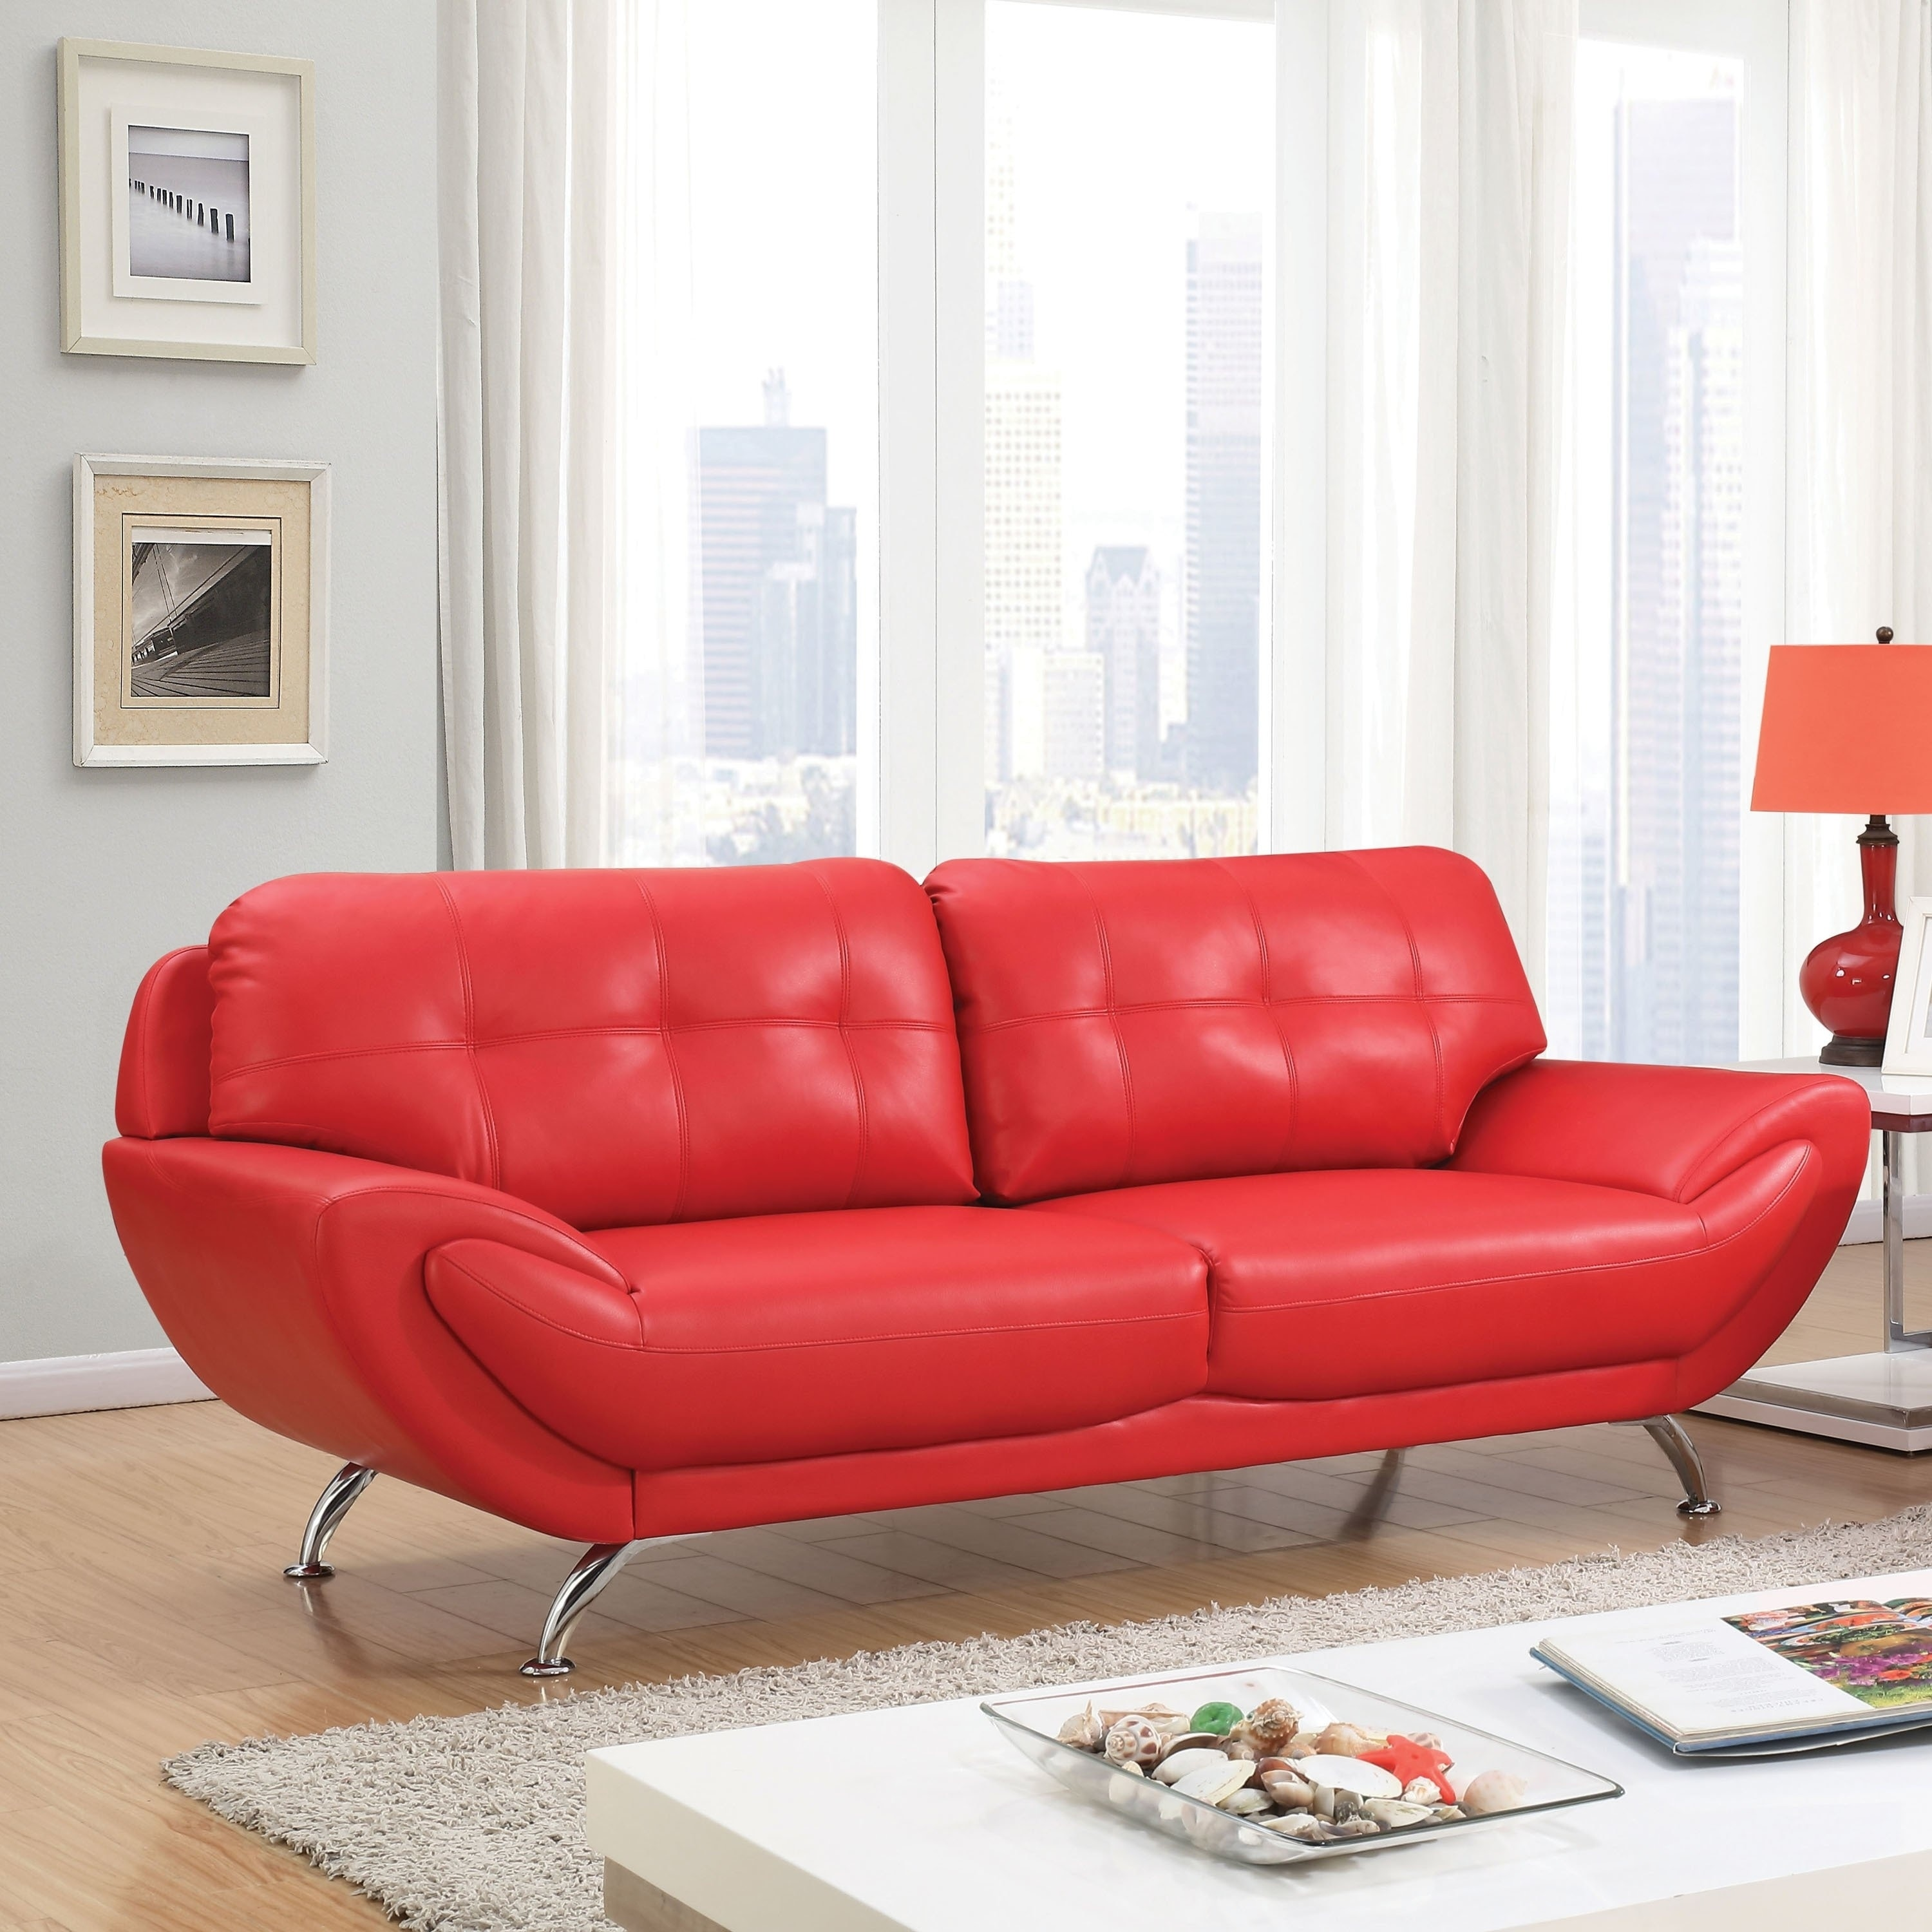 Furniture of America Aliv Contemporary Faux Leather Tufted Sofa